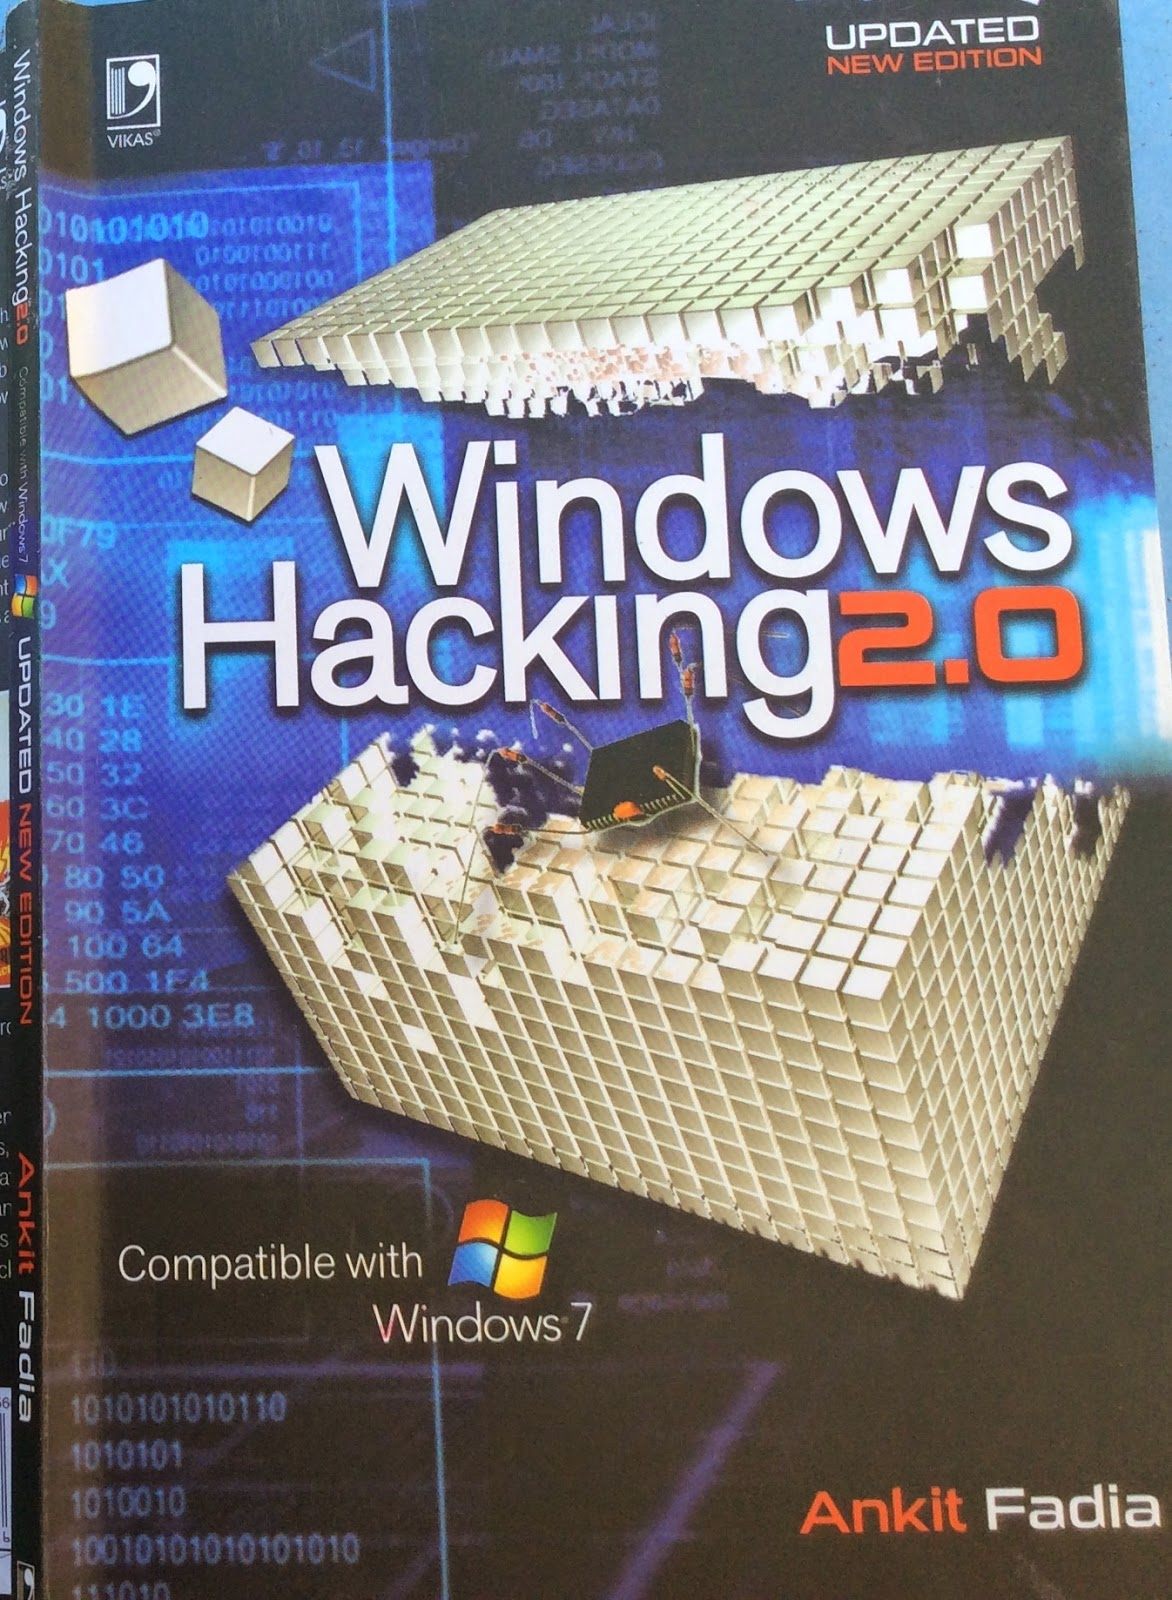 Windows Hacking 2.0 by Ankit Fadia (compatible with windows 7)